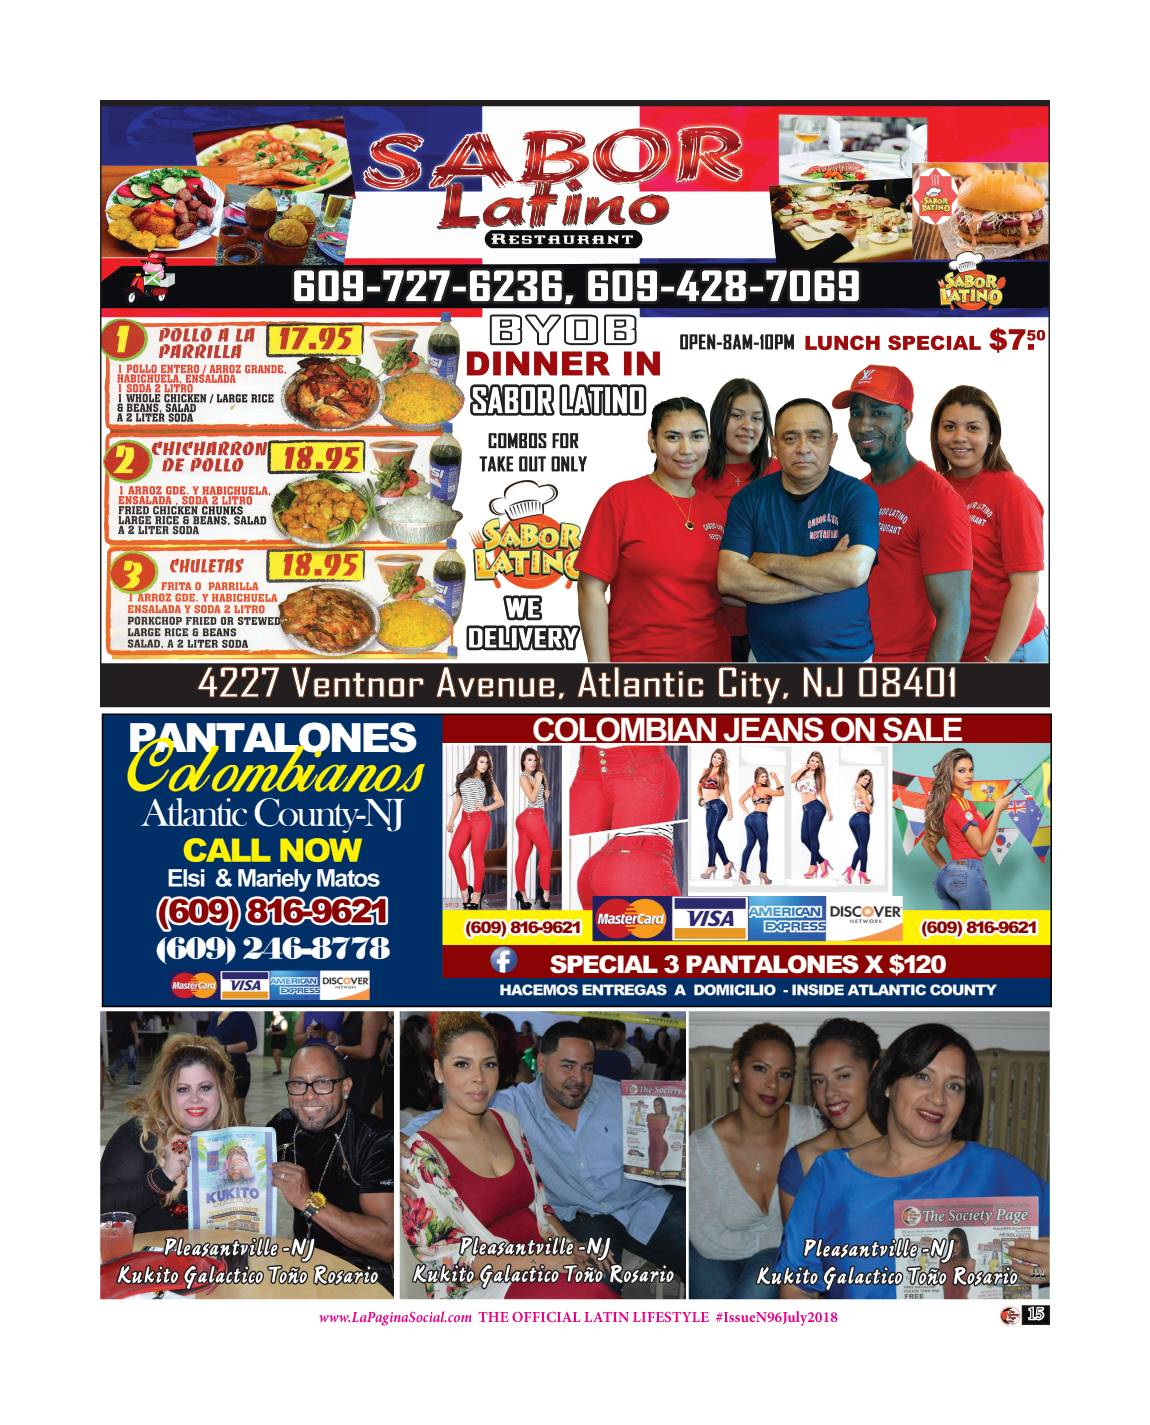 14 The Society Page en Espanol Issue N96 July 2018